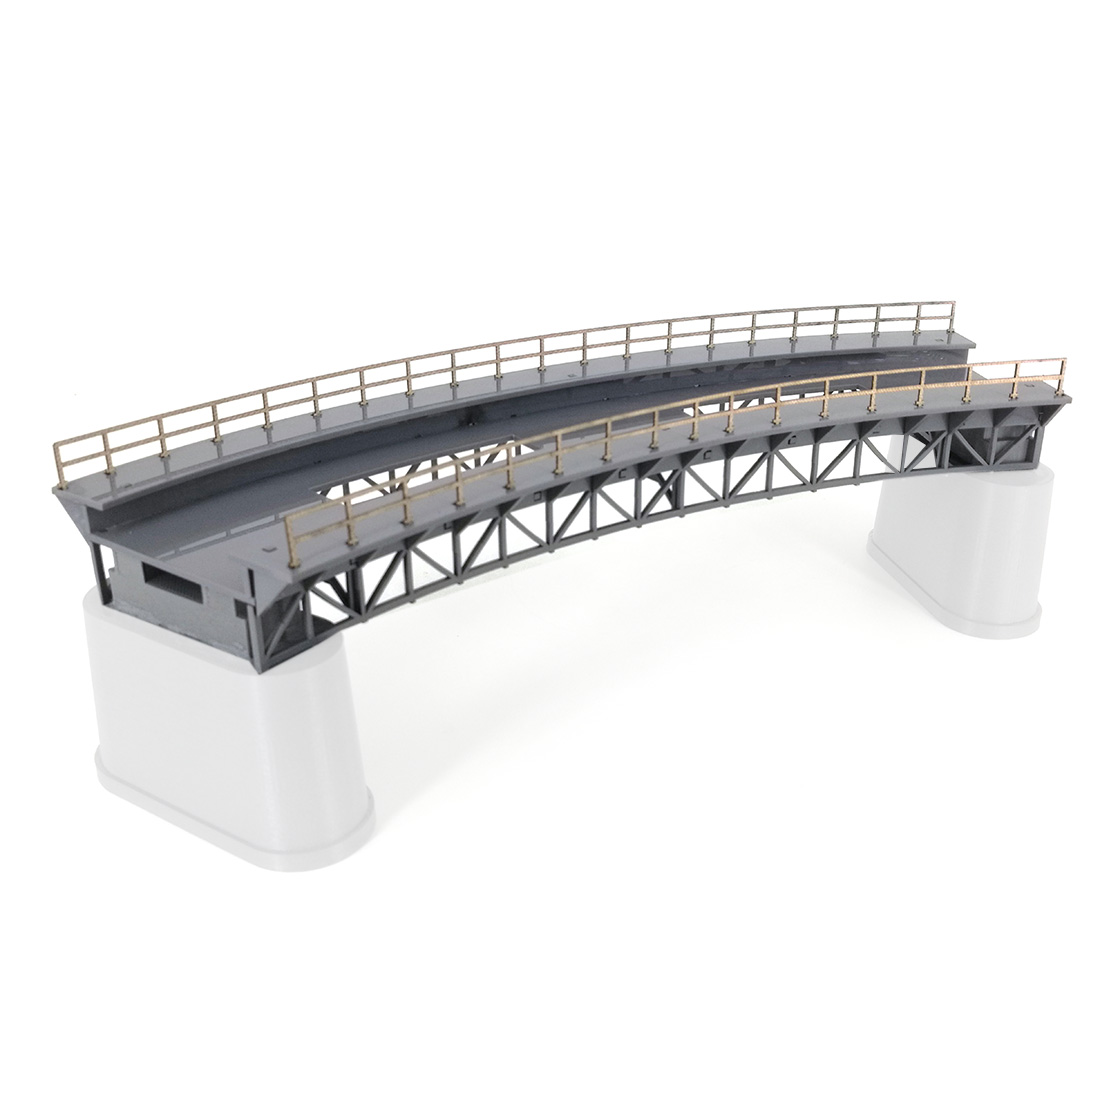 1:87 HO Scale Train Railway Scene Decoration Q4 R1 Curved Railway Bridge Model Without Pier For Sand Table